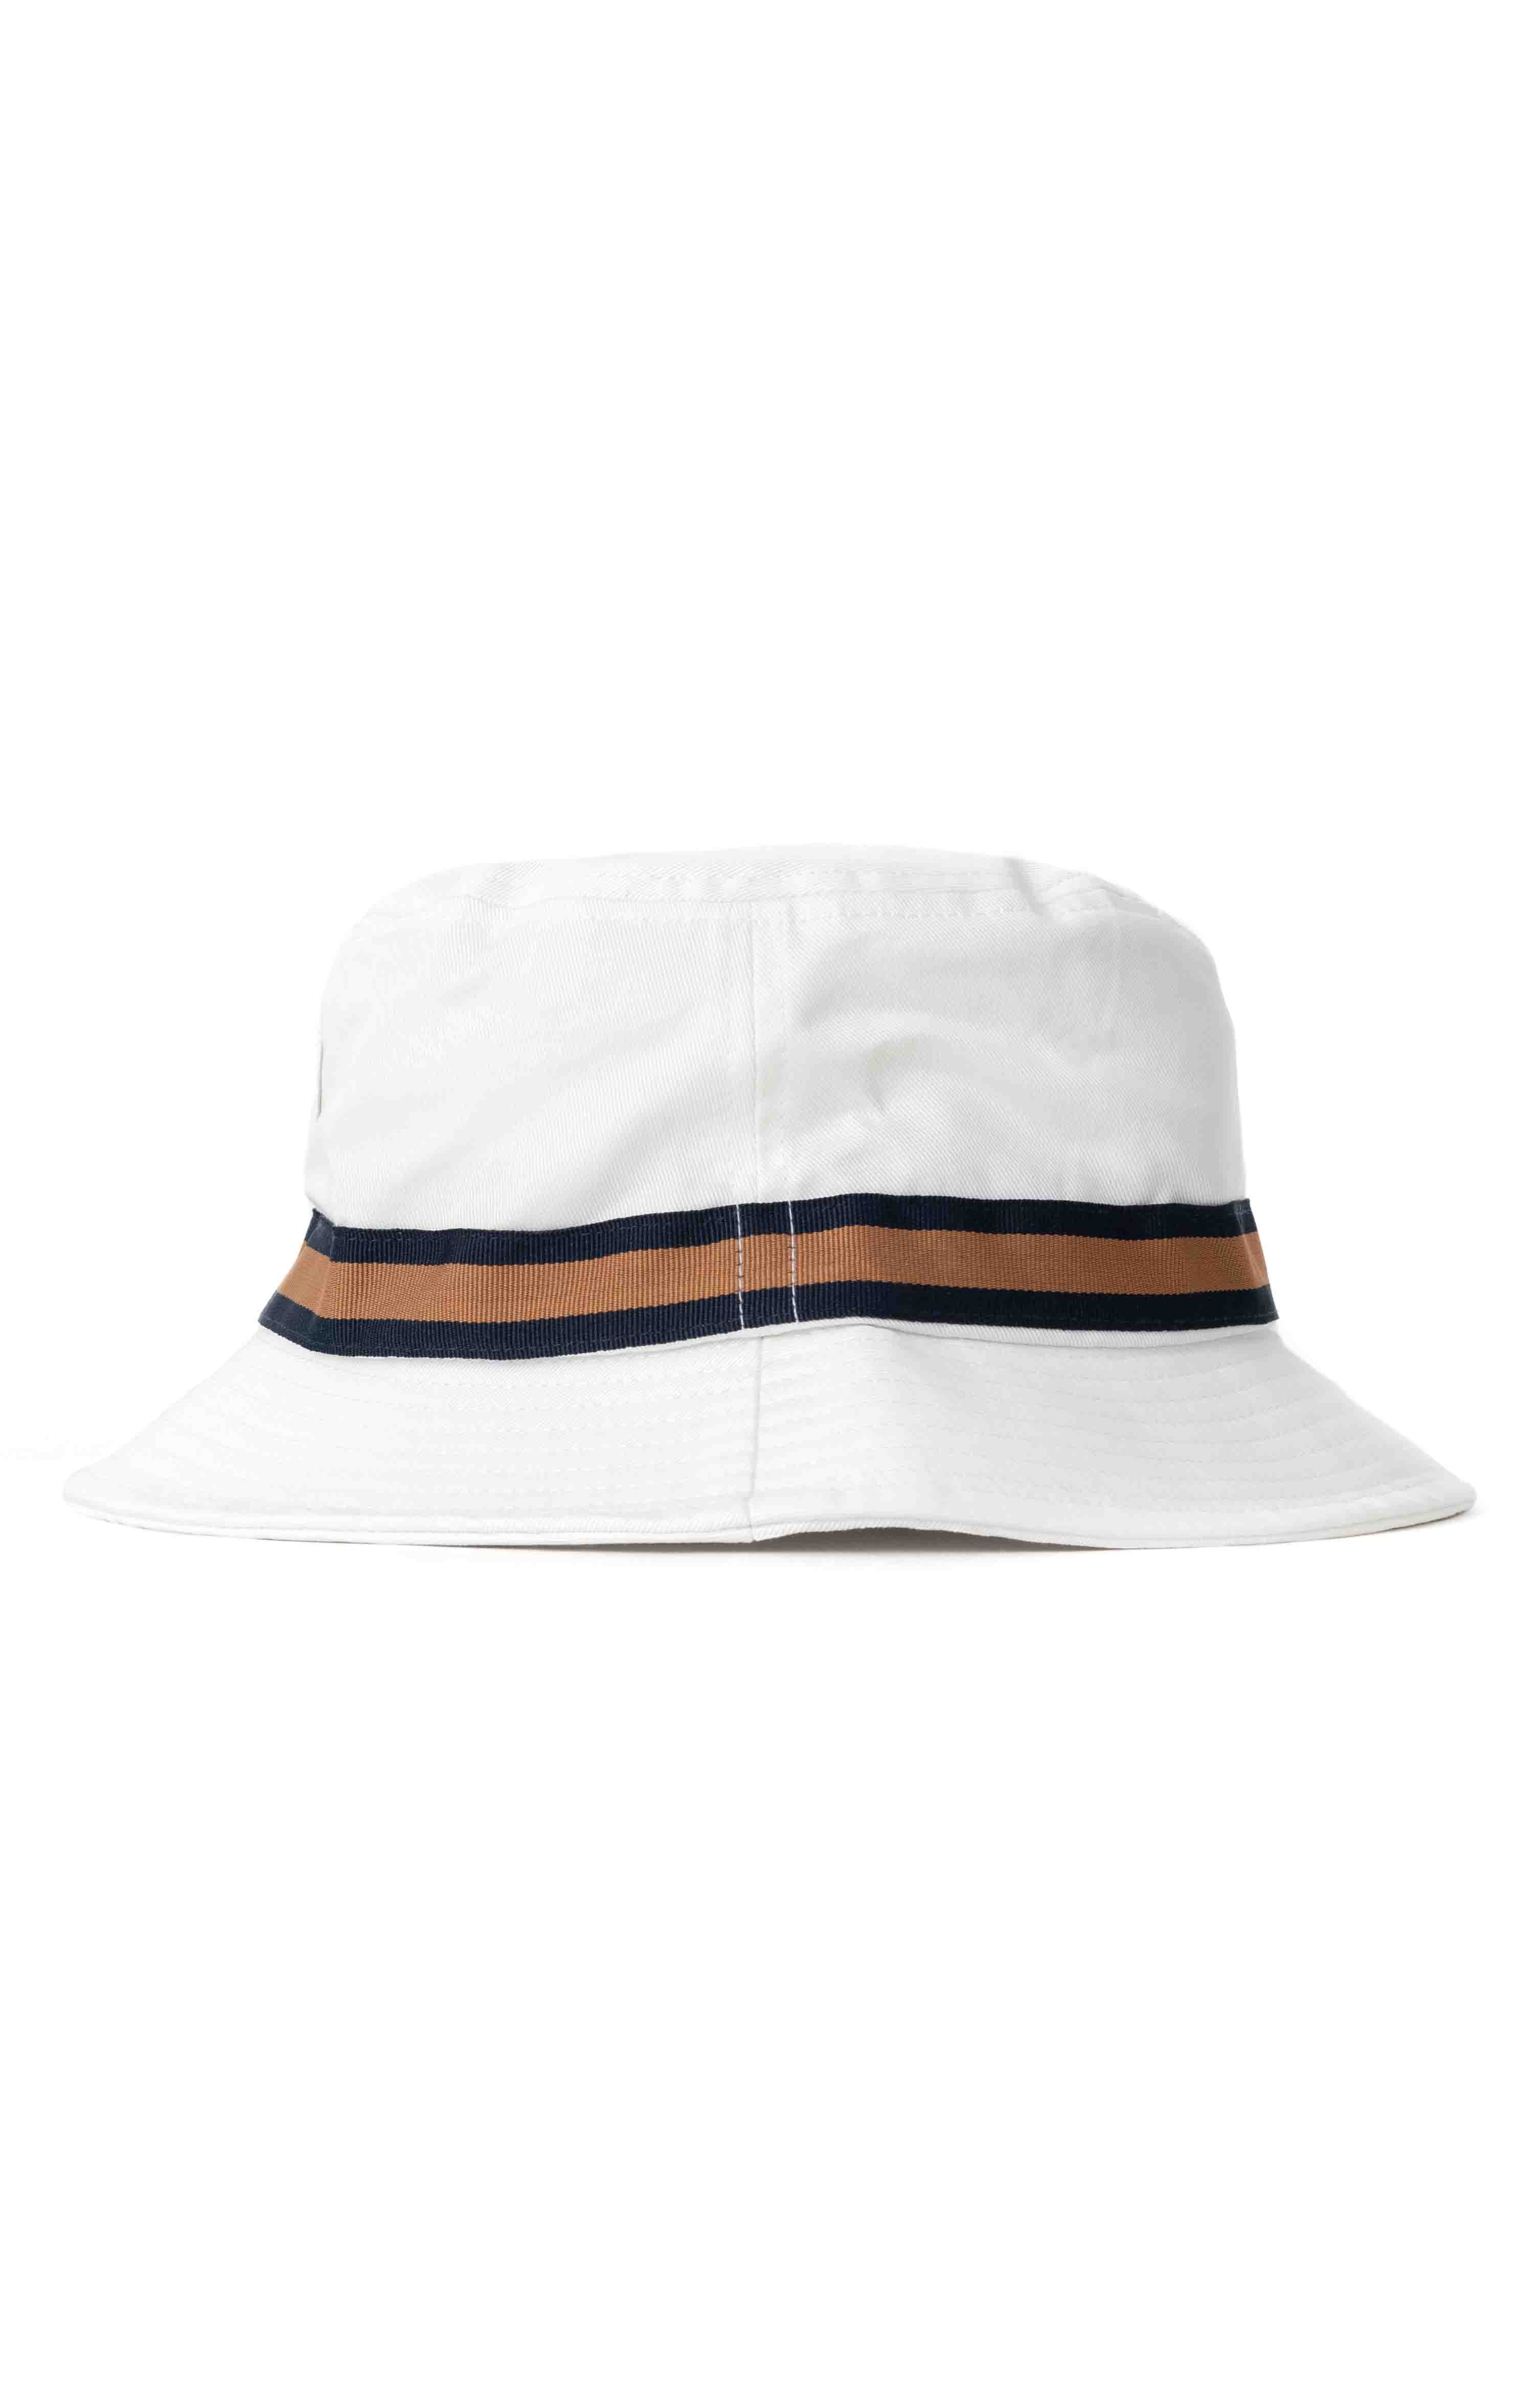 Alton Packable Bucket Hat - Off White/Washed Navy 3